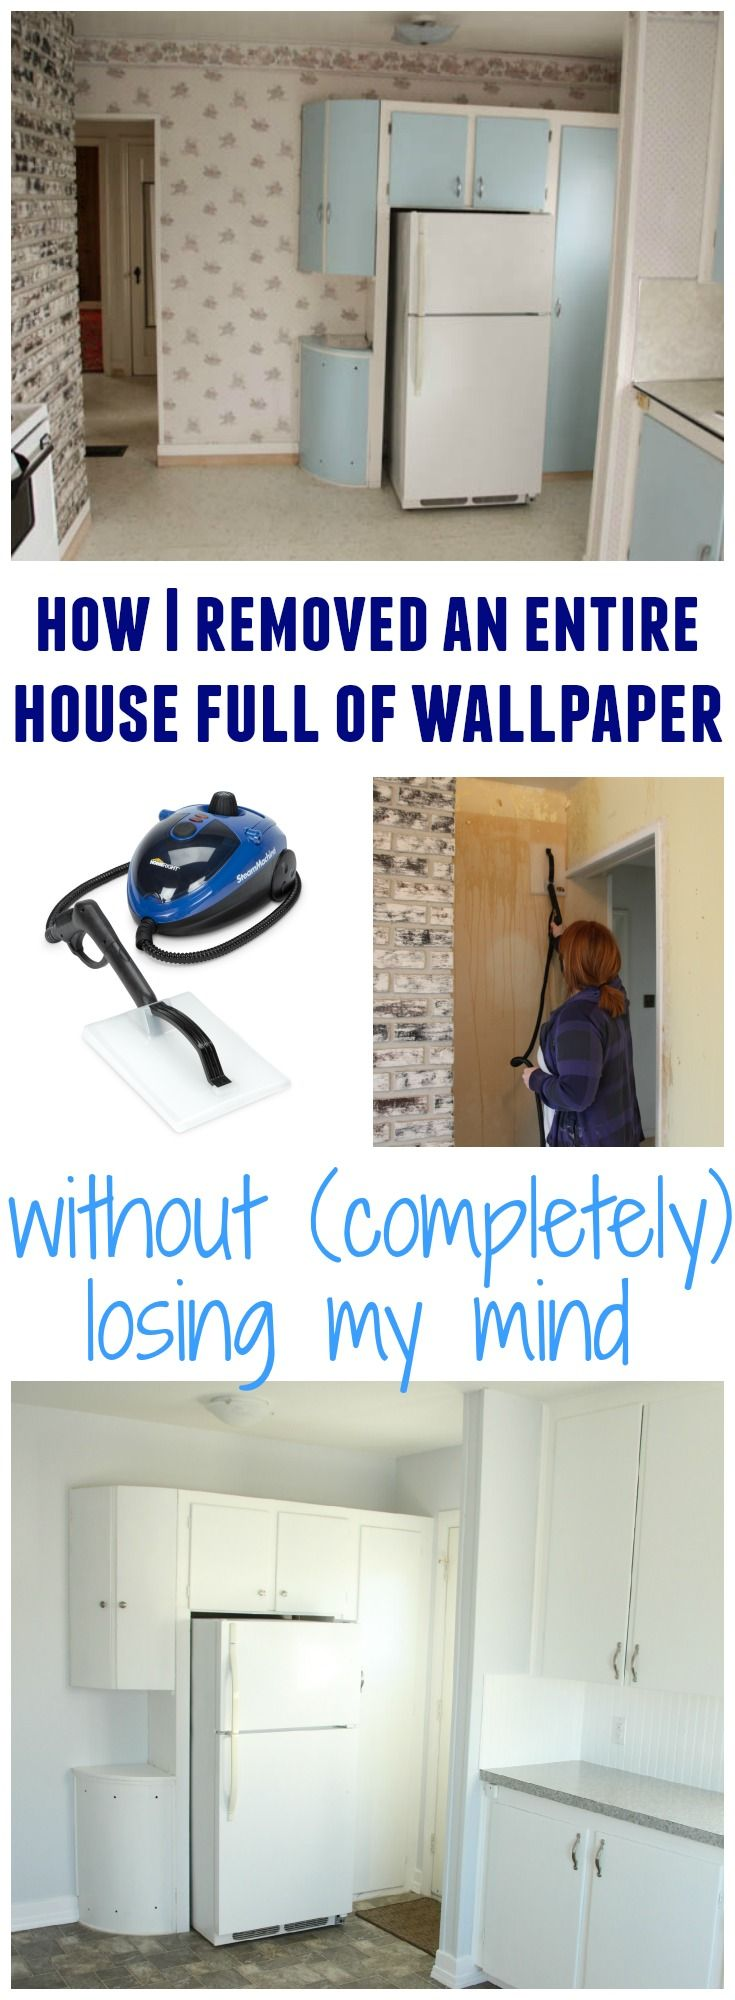 How To Remove Wallpaper Without Completely Losing Your Mind Removable Wallpaper Updating House Home Diy